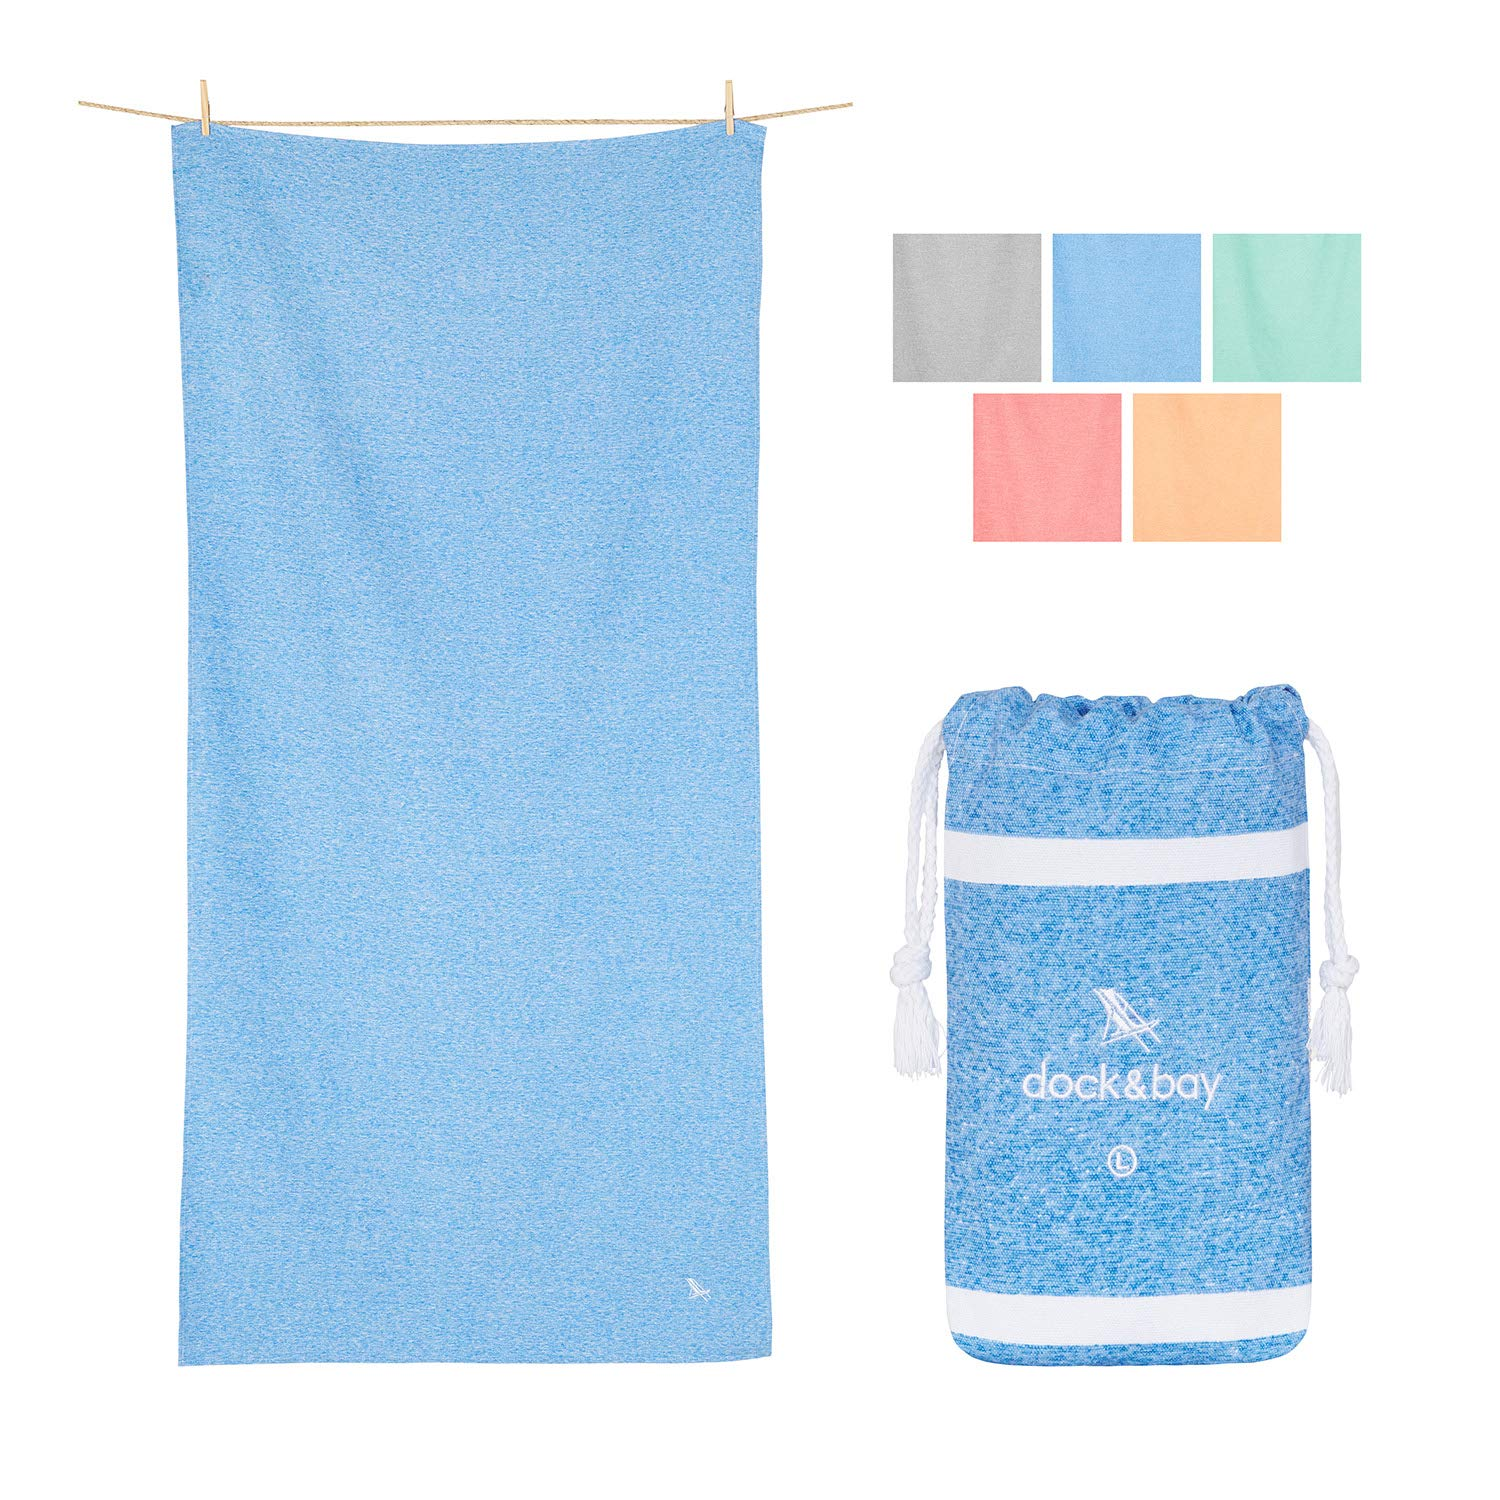 Dock & Bay Large Quick Dry Gym Towel - Lagoon Blue, 63 x 31 - Fitness, Shower & Travel - Gym Shower Towel, Fast Drying